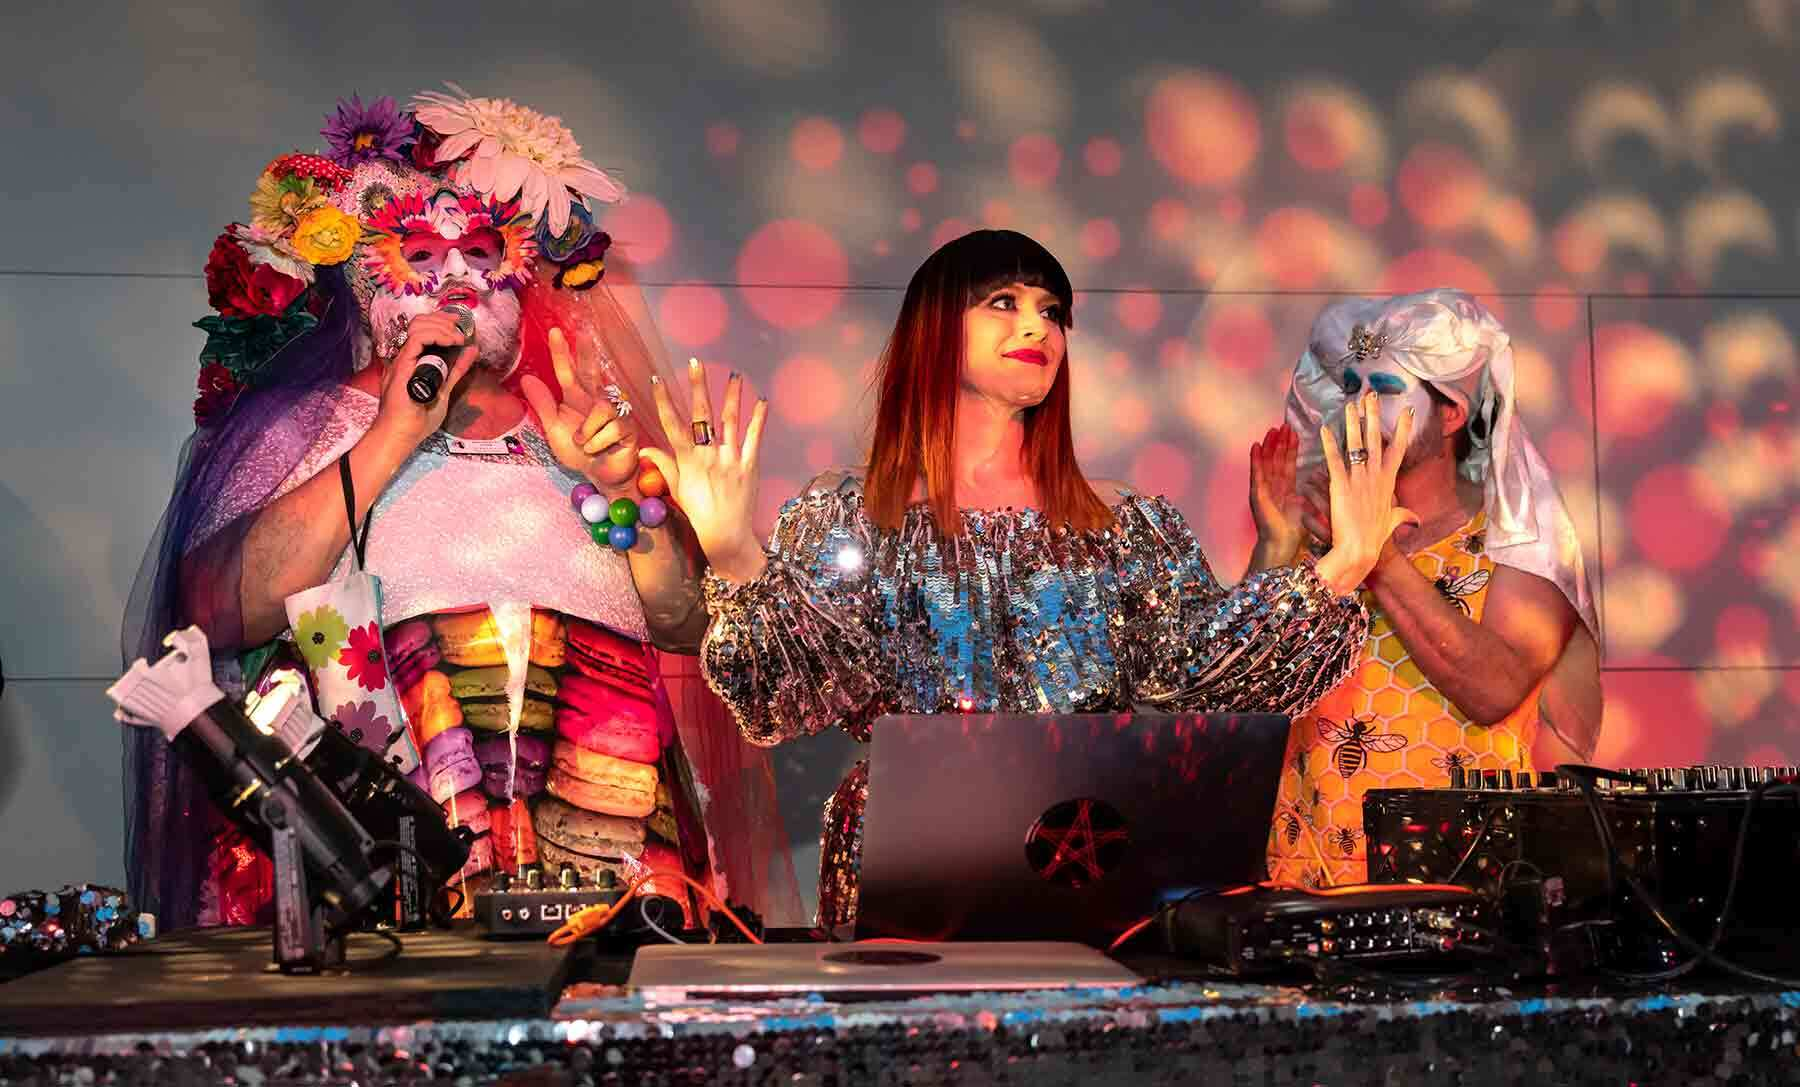 Three performers dressed in bright costumes perform as DJs in a brightly colored lit room.